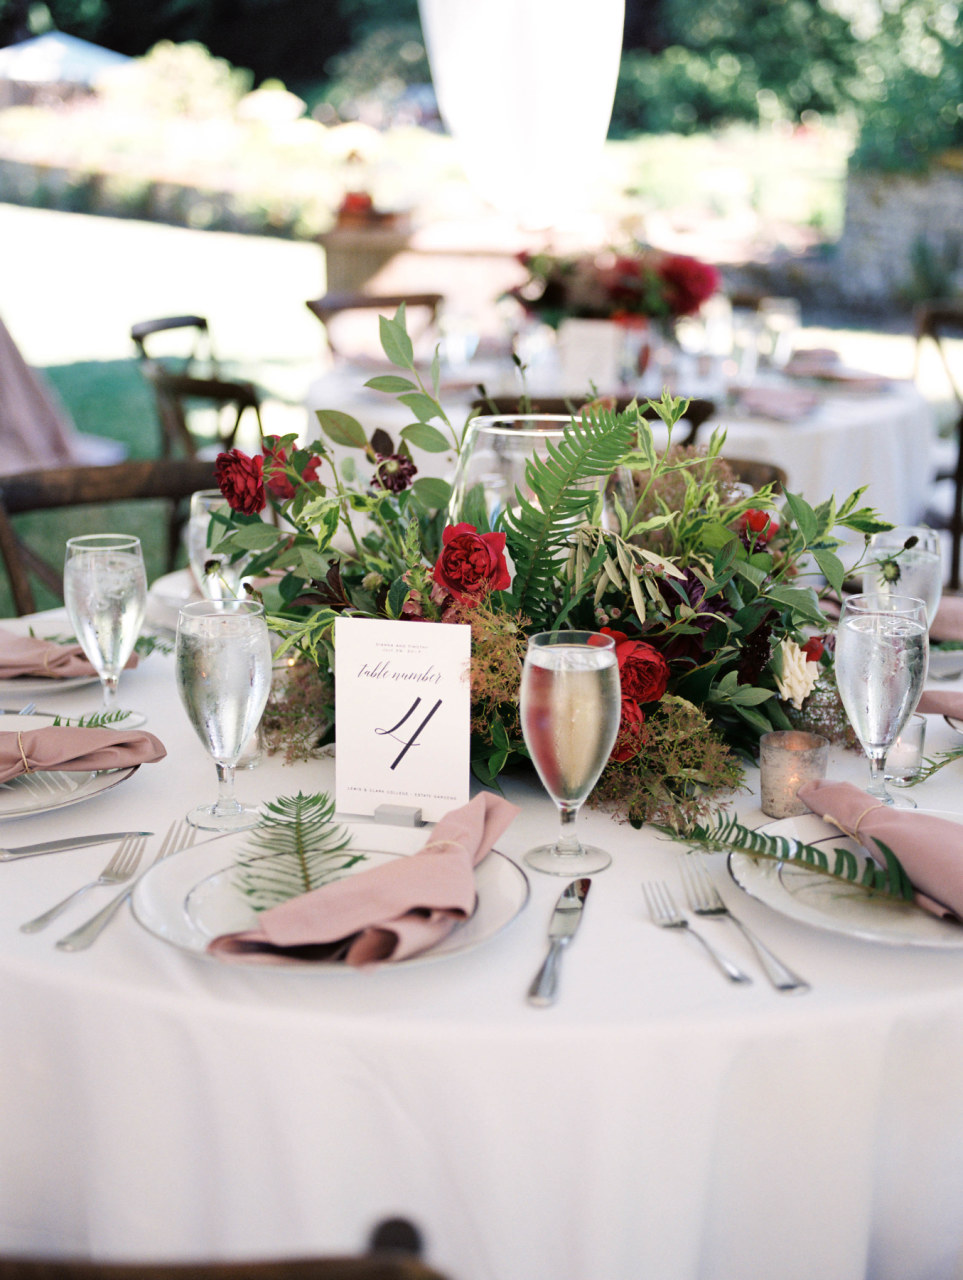 fine-art-wedding-florist-foraged-floral-lewis-and-clark-college-wedding-flower-centerpiece-with-red-flowers.jpg